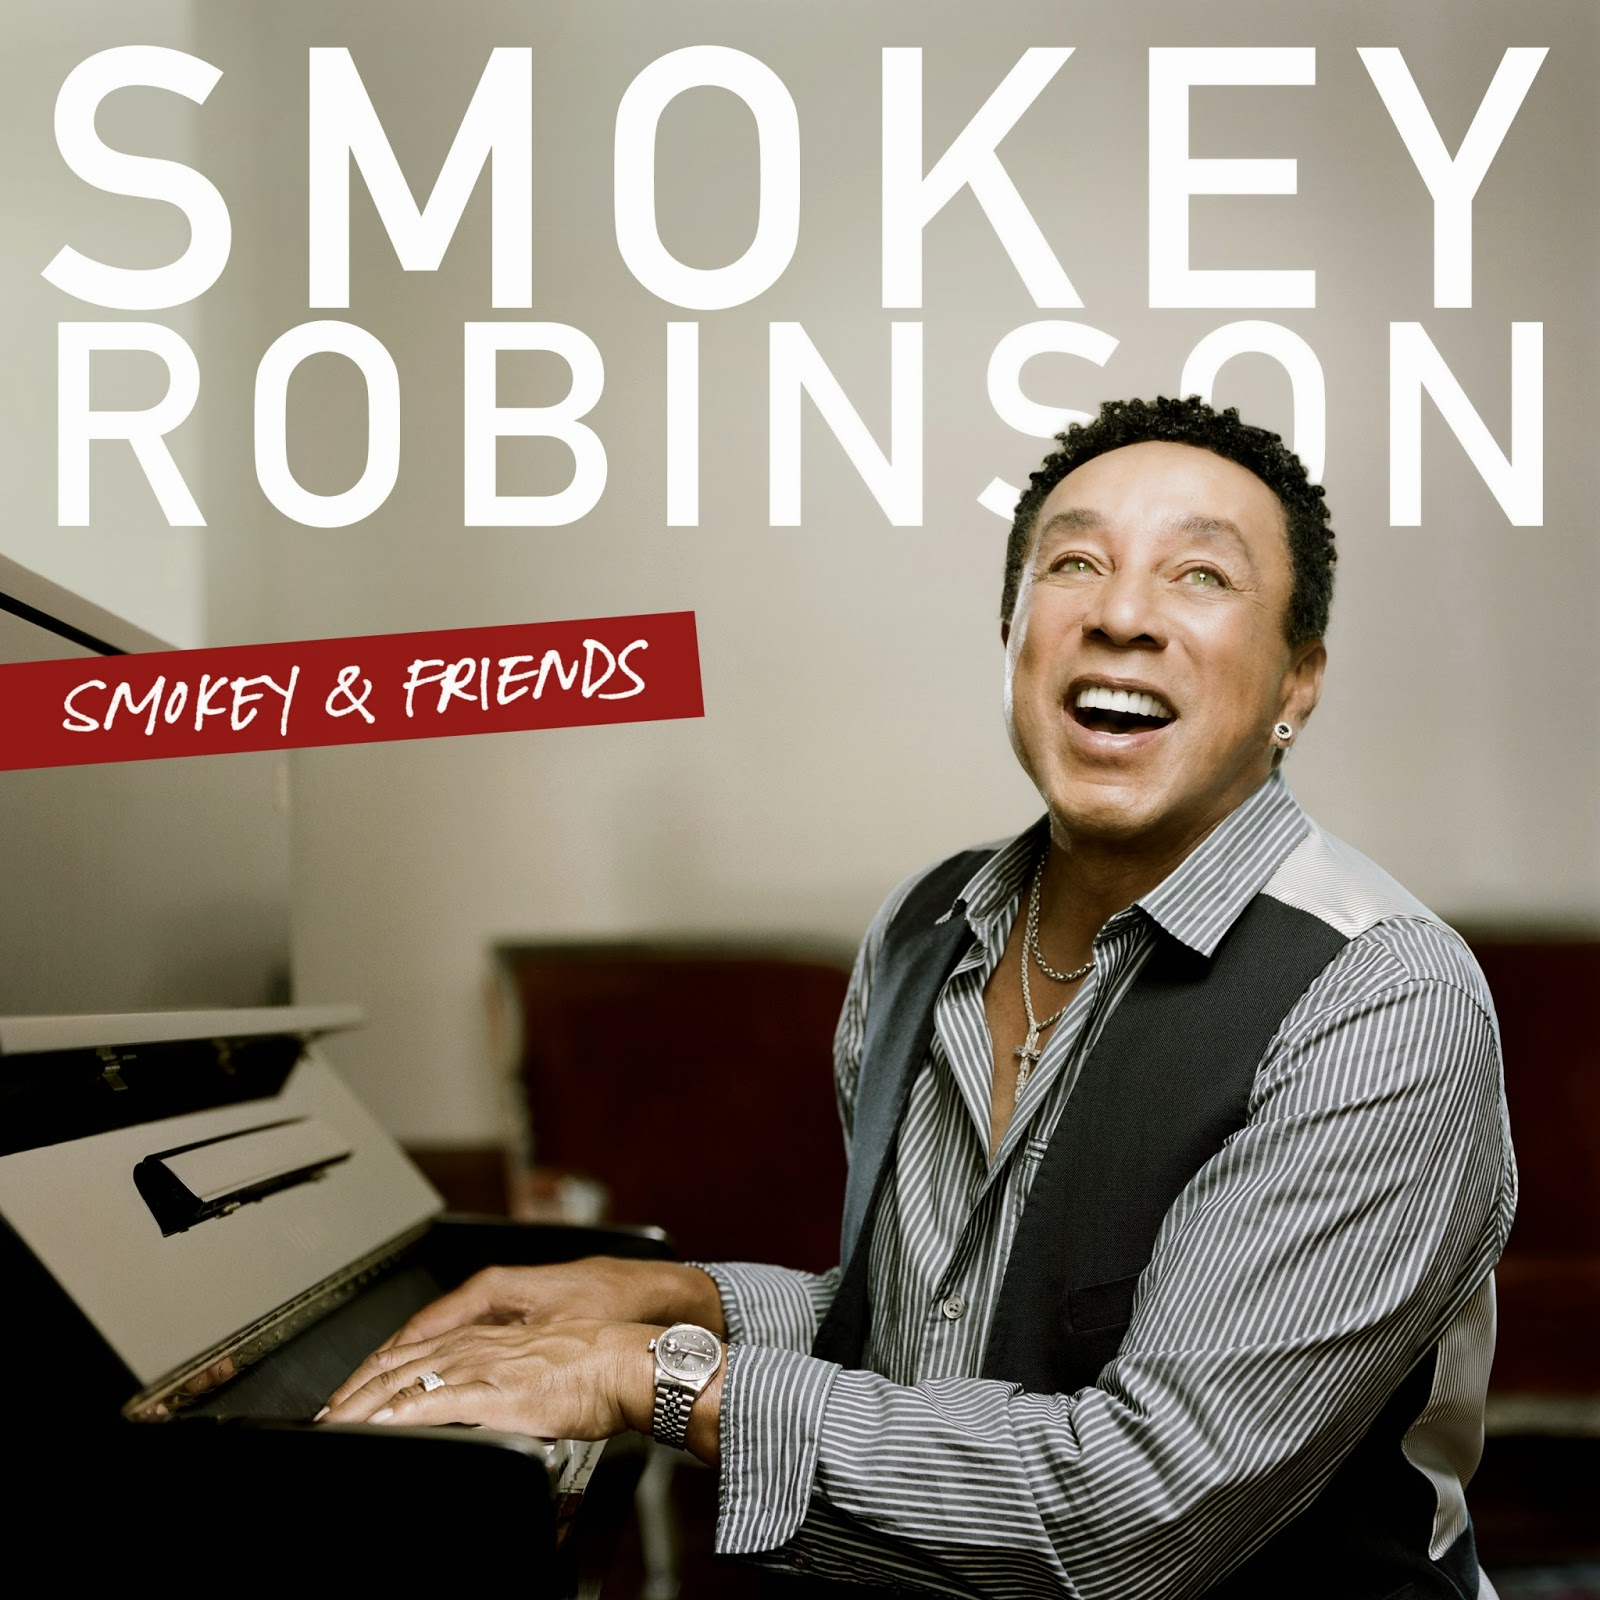 http://www.d4am.net/2014/08/smokey-robinson-smokey-friends.html